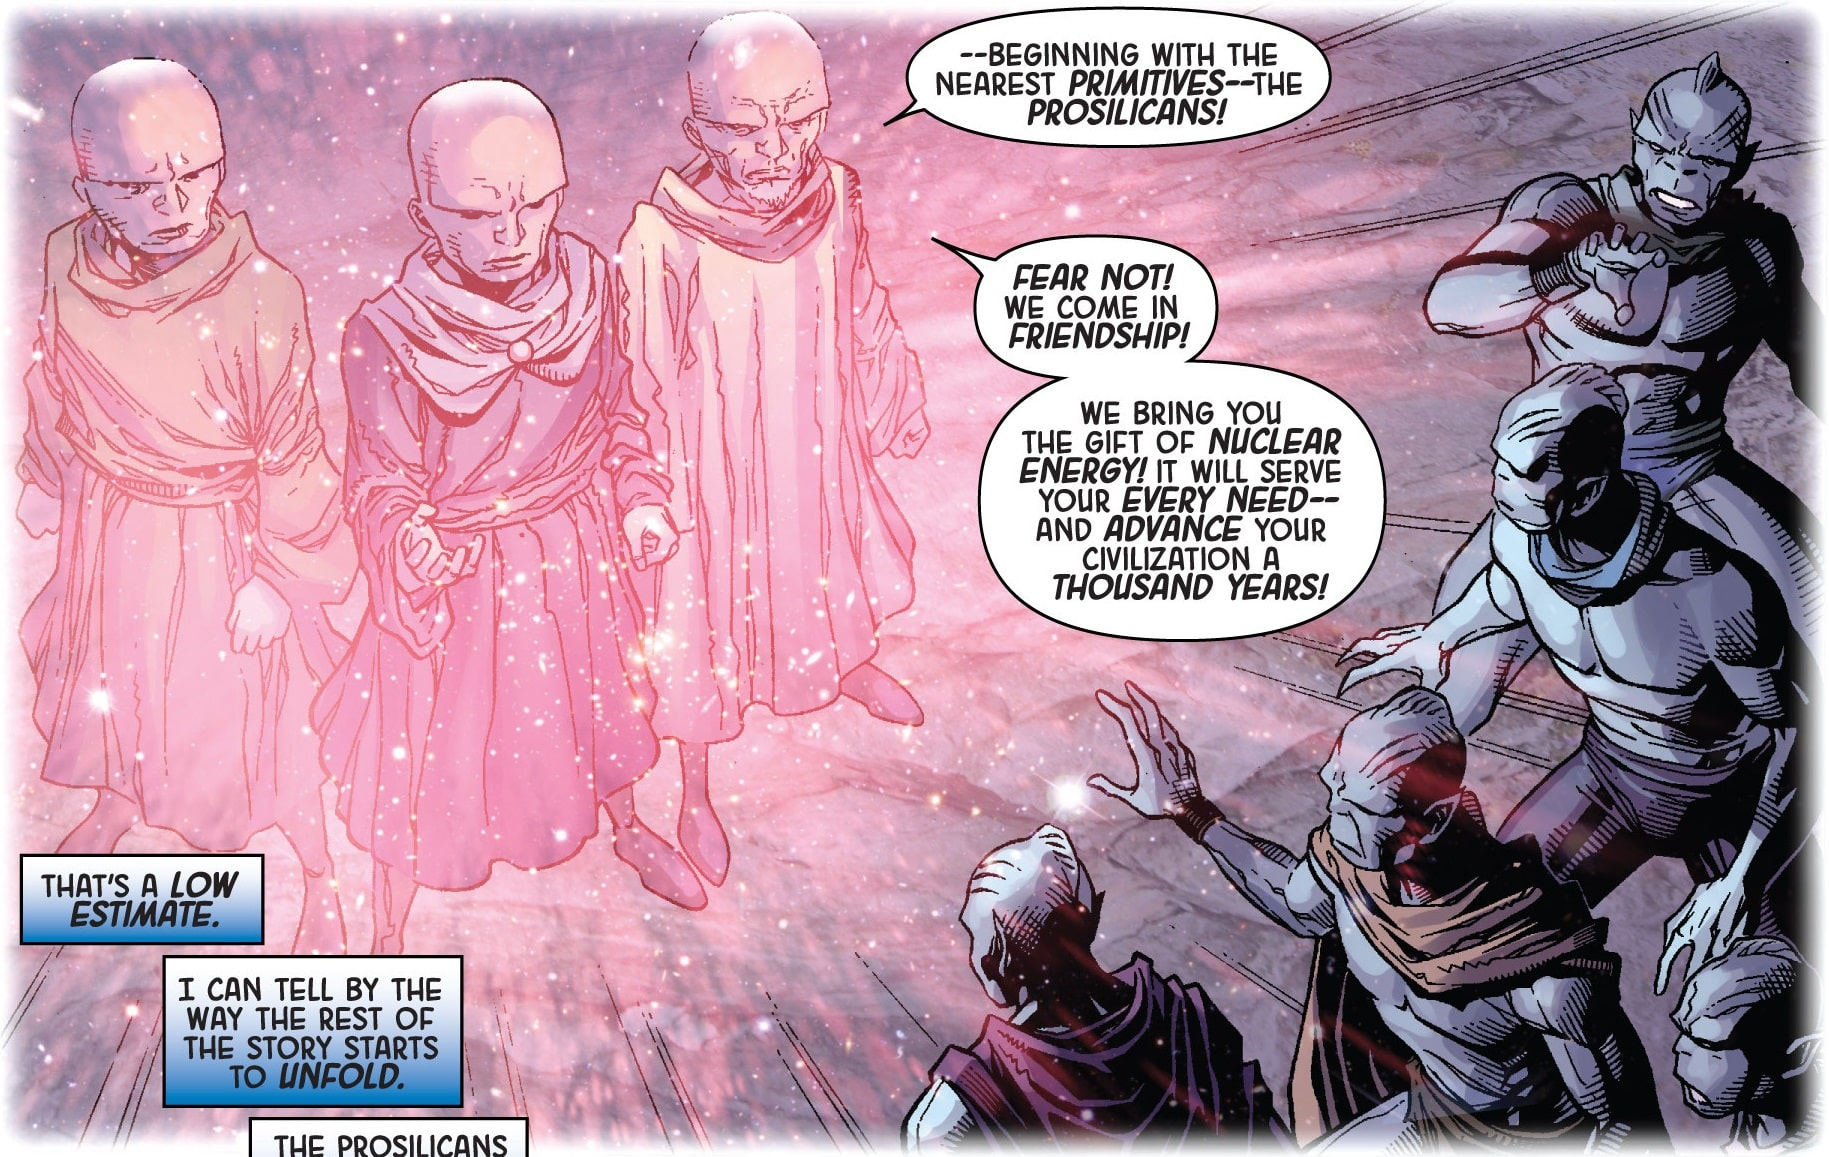 Uatu_Earth-616_and_his_people_visit_the_Procsilicans